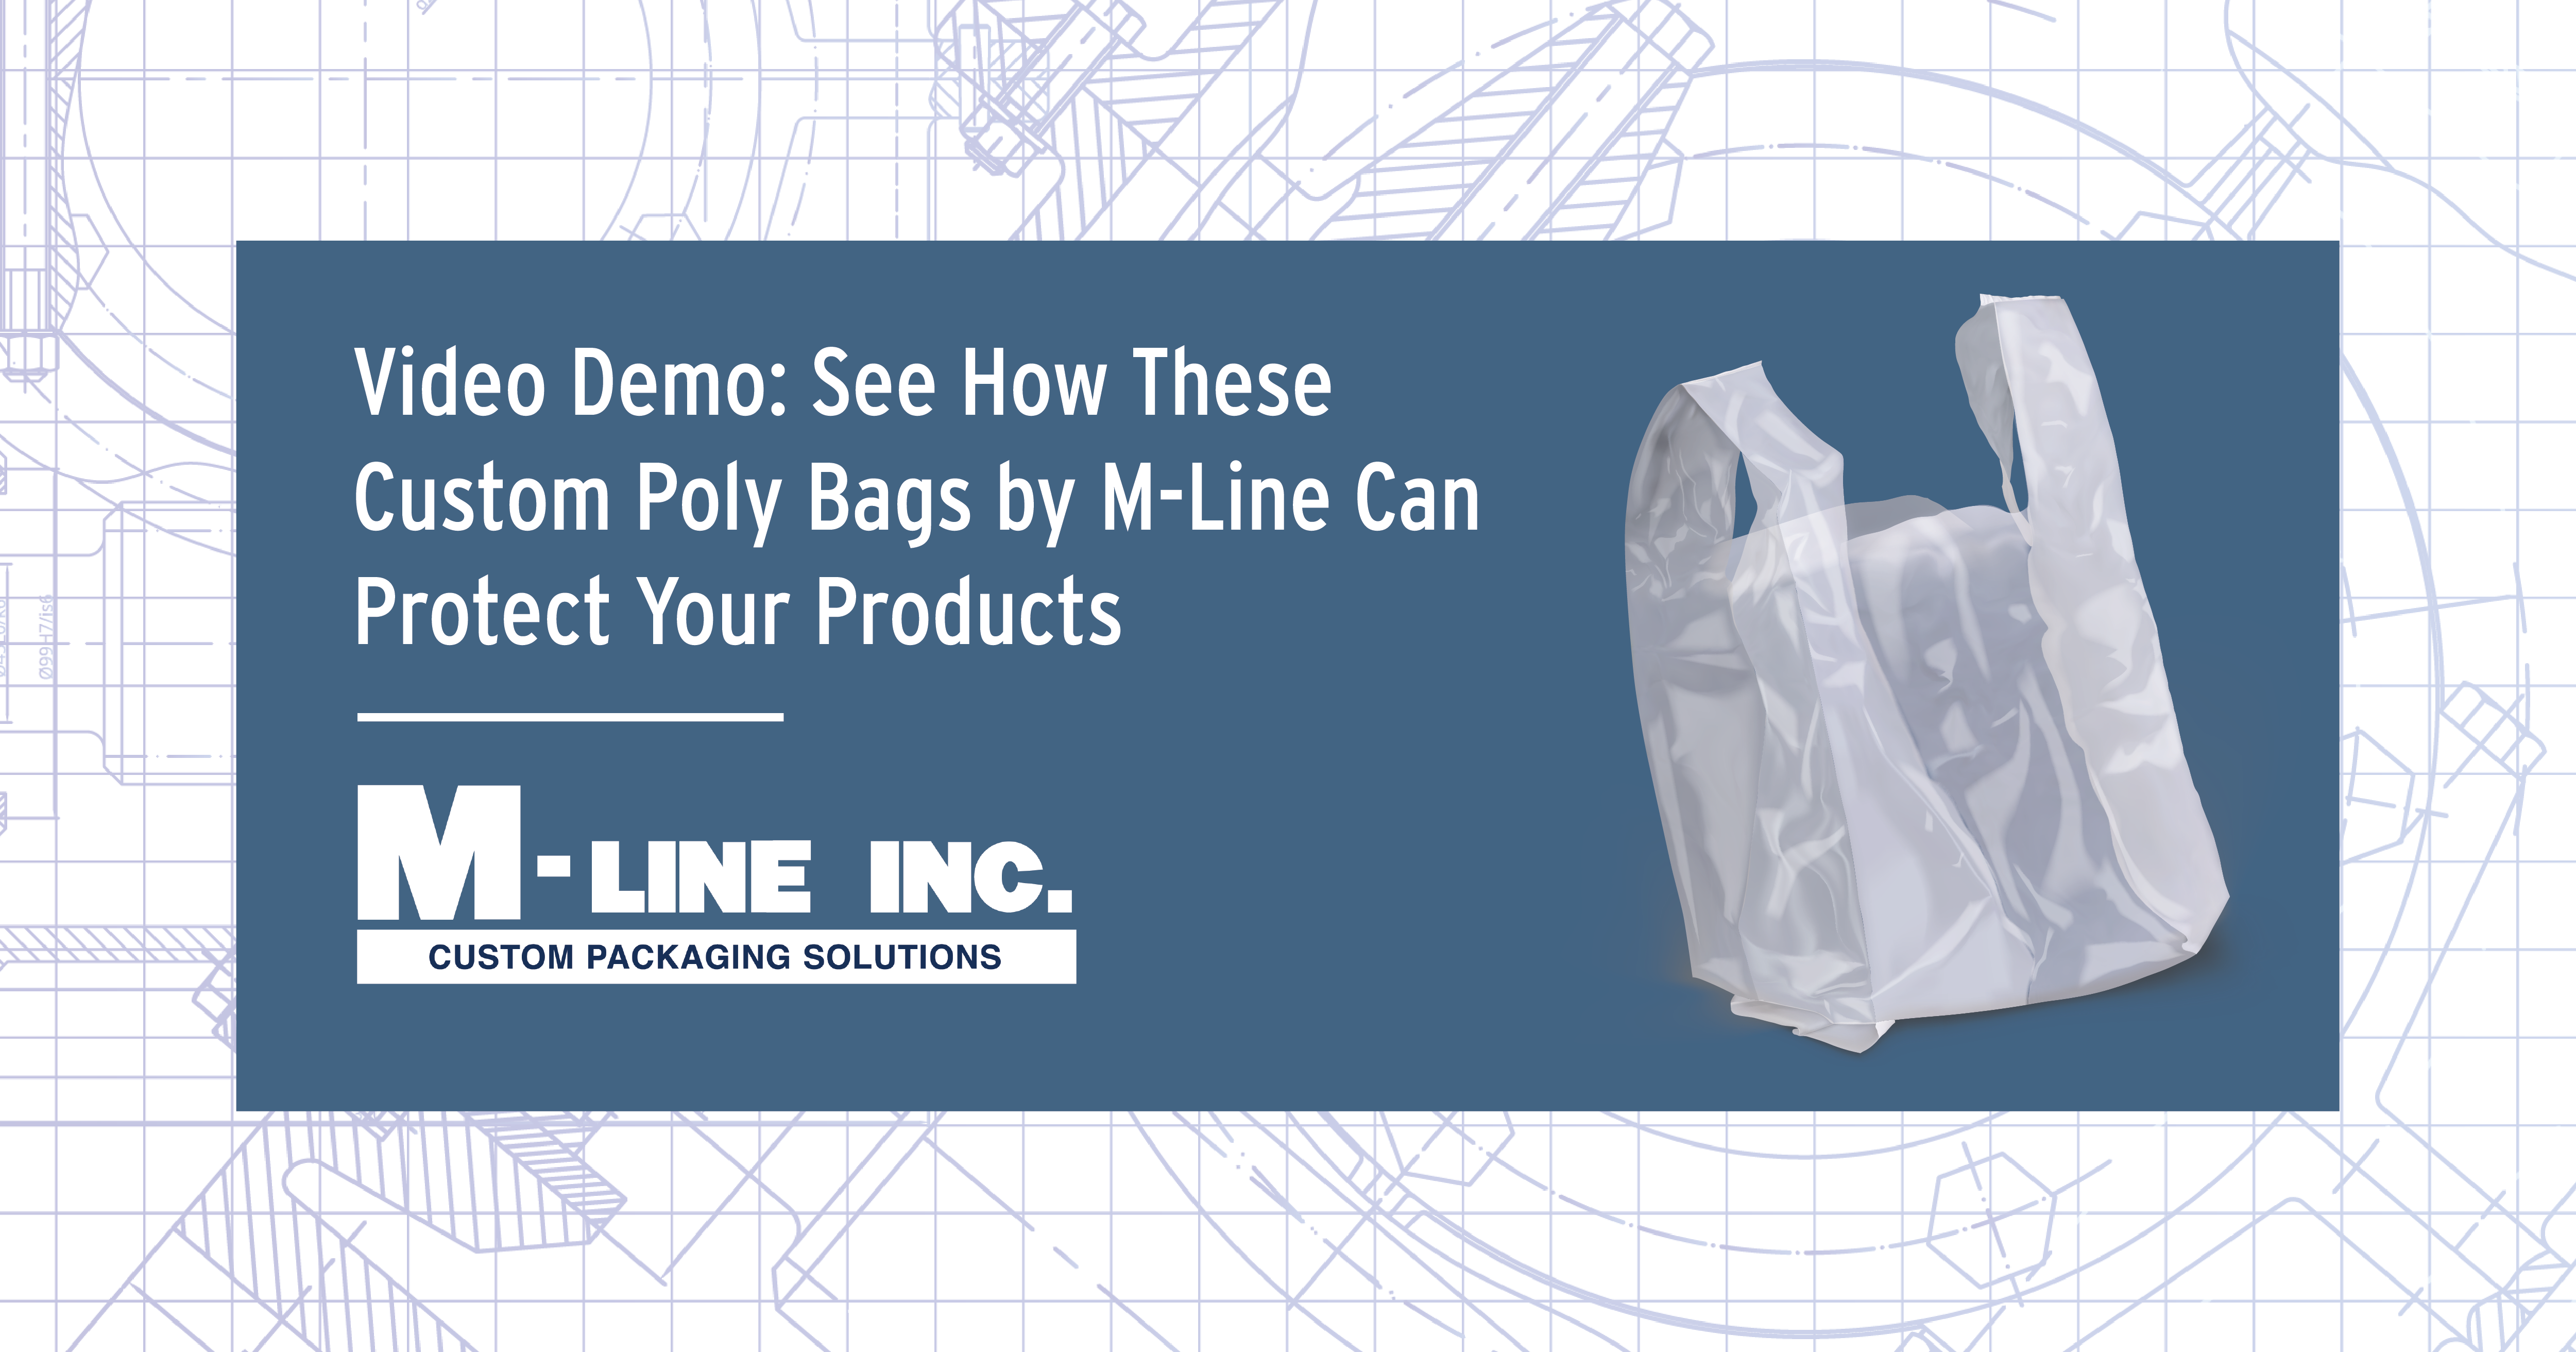 Video Demo: See How These Custom Poly Bags by M-Line Can Protect Your Products